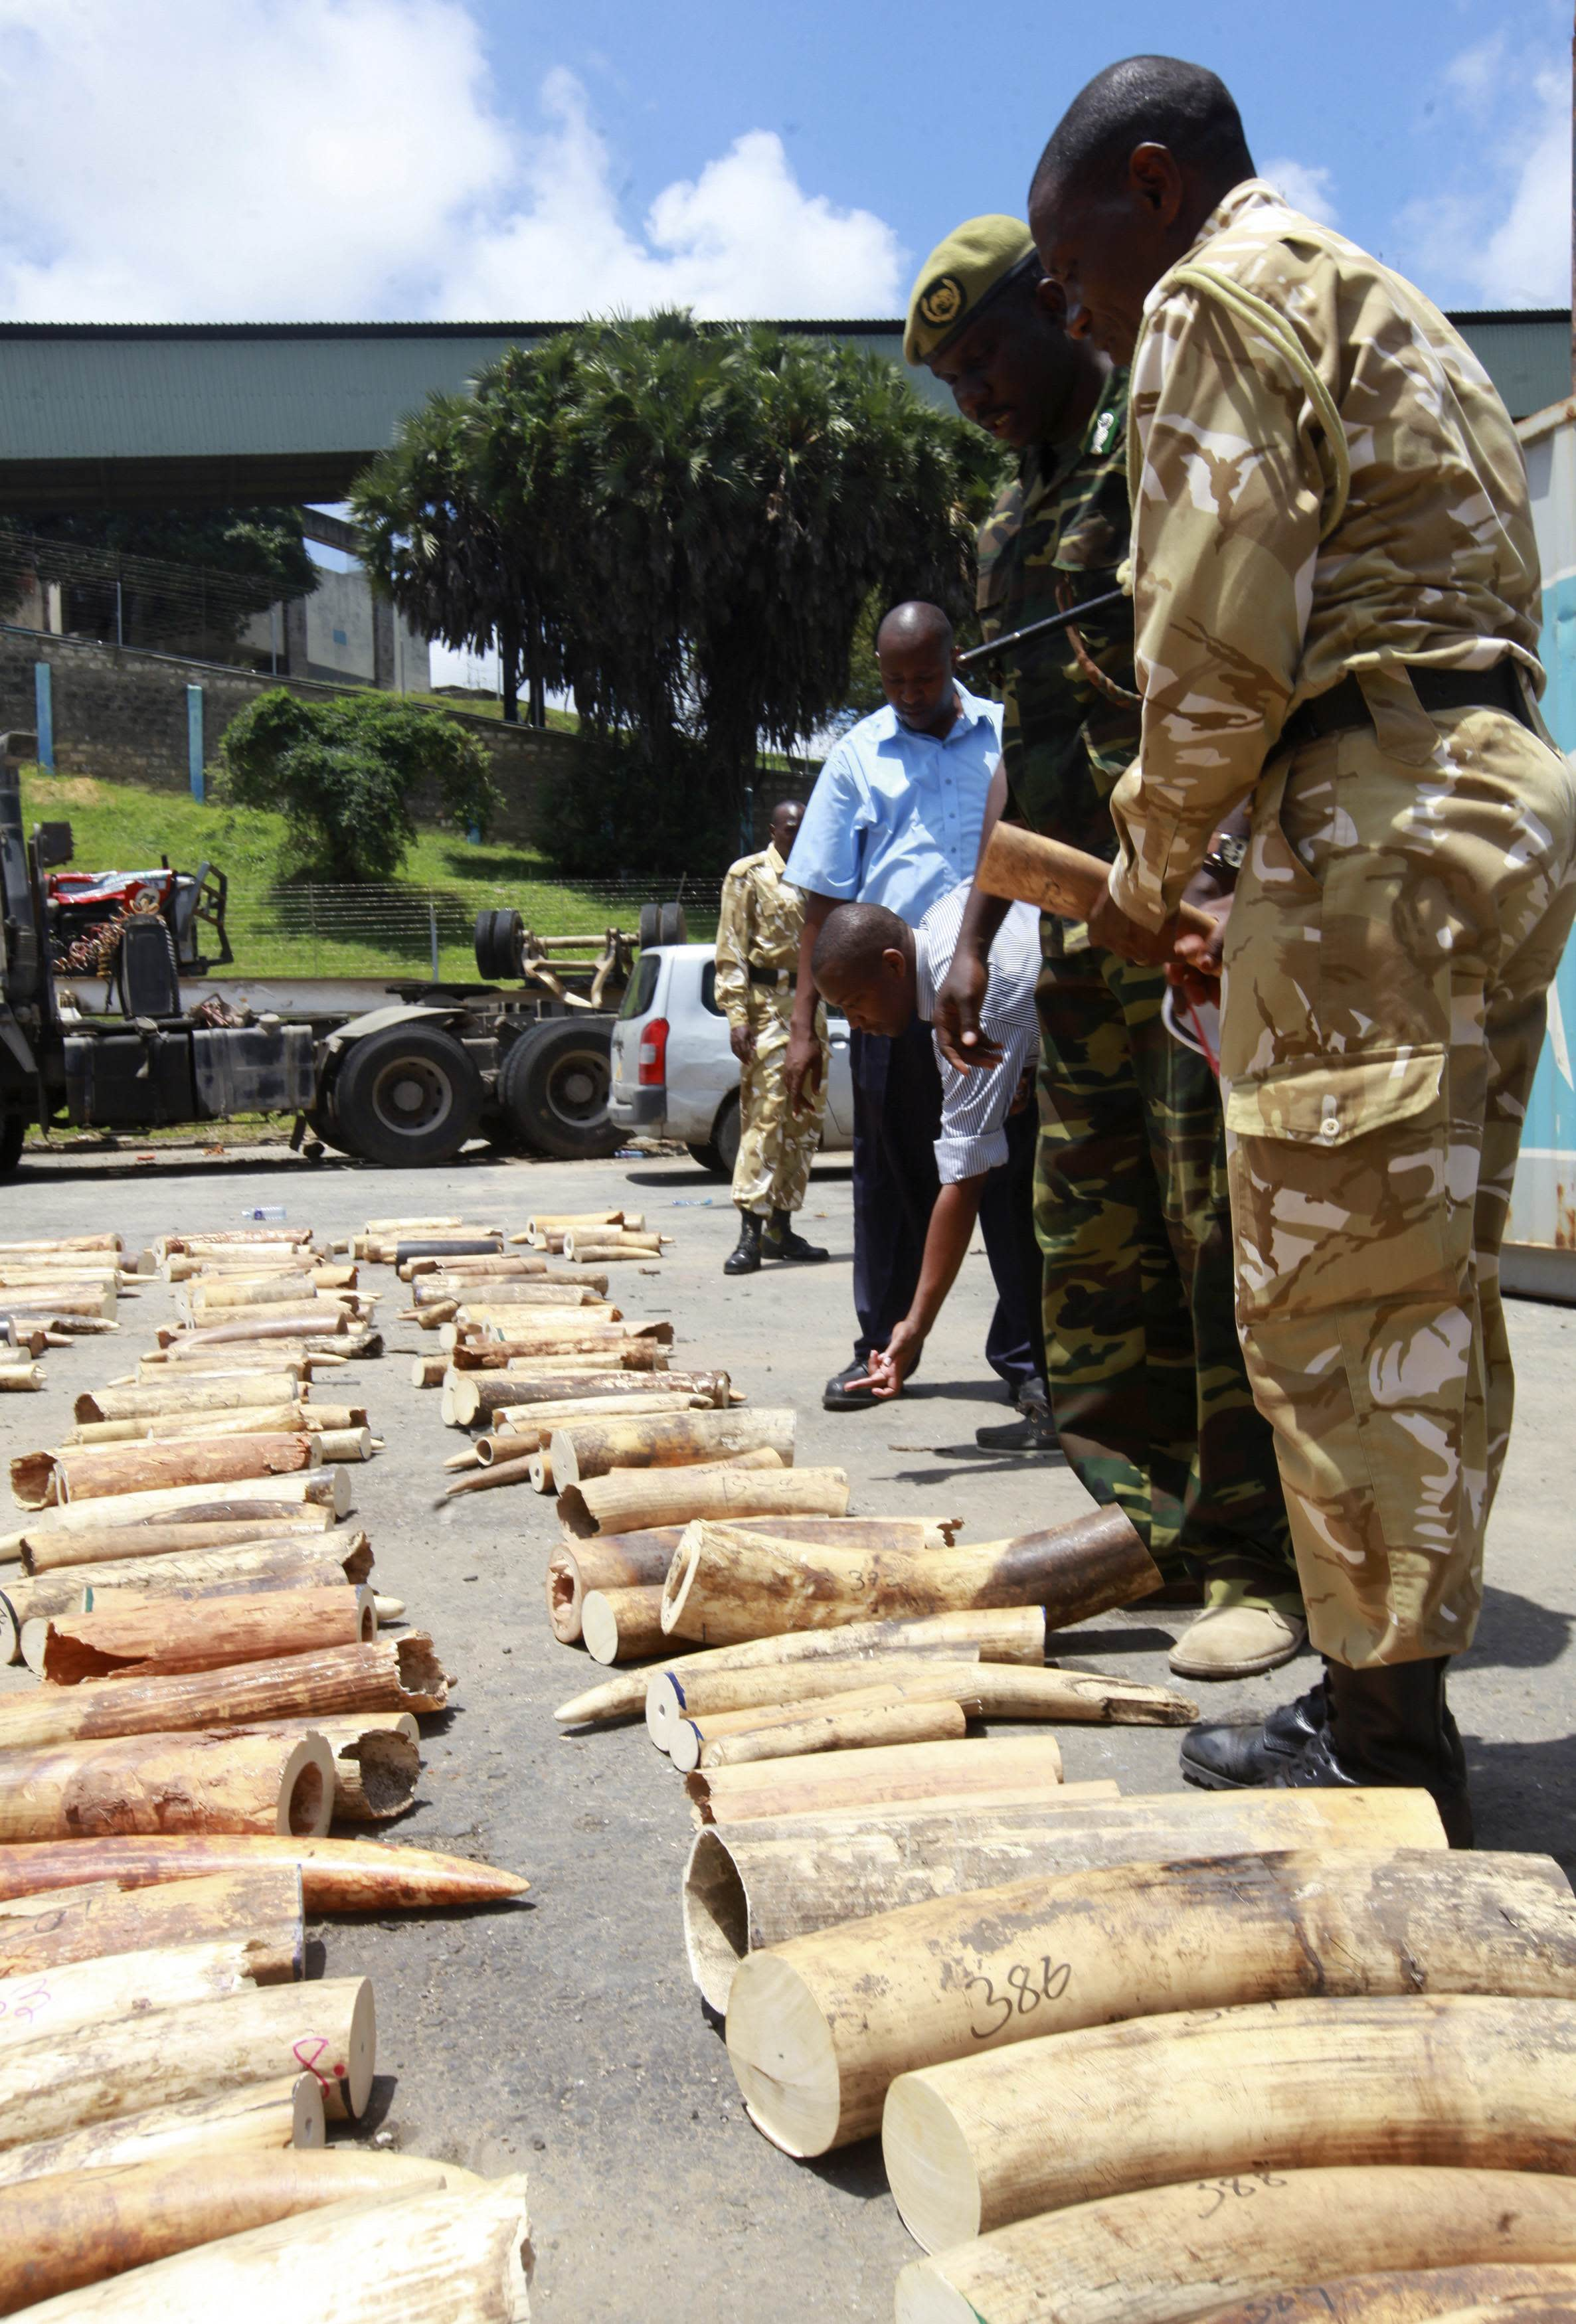 Kenya Wildlife Service (KWS) officers count elephant tusks which they impounded at a container terminal in Kenya's port city of Mombasa October 8, 2013. The container documents indicate that the tusks came Malaba Uganda and were destined for Turkey, Kenya Revenue Authority officials said. REUTERS/Joseph Okanga (KENYA - Tags: CRIME LAW ANIMALS)